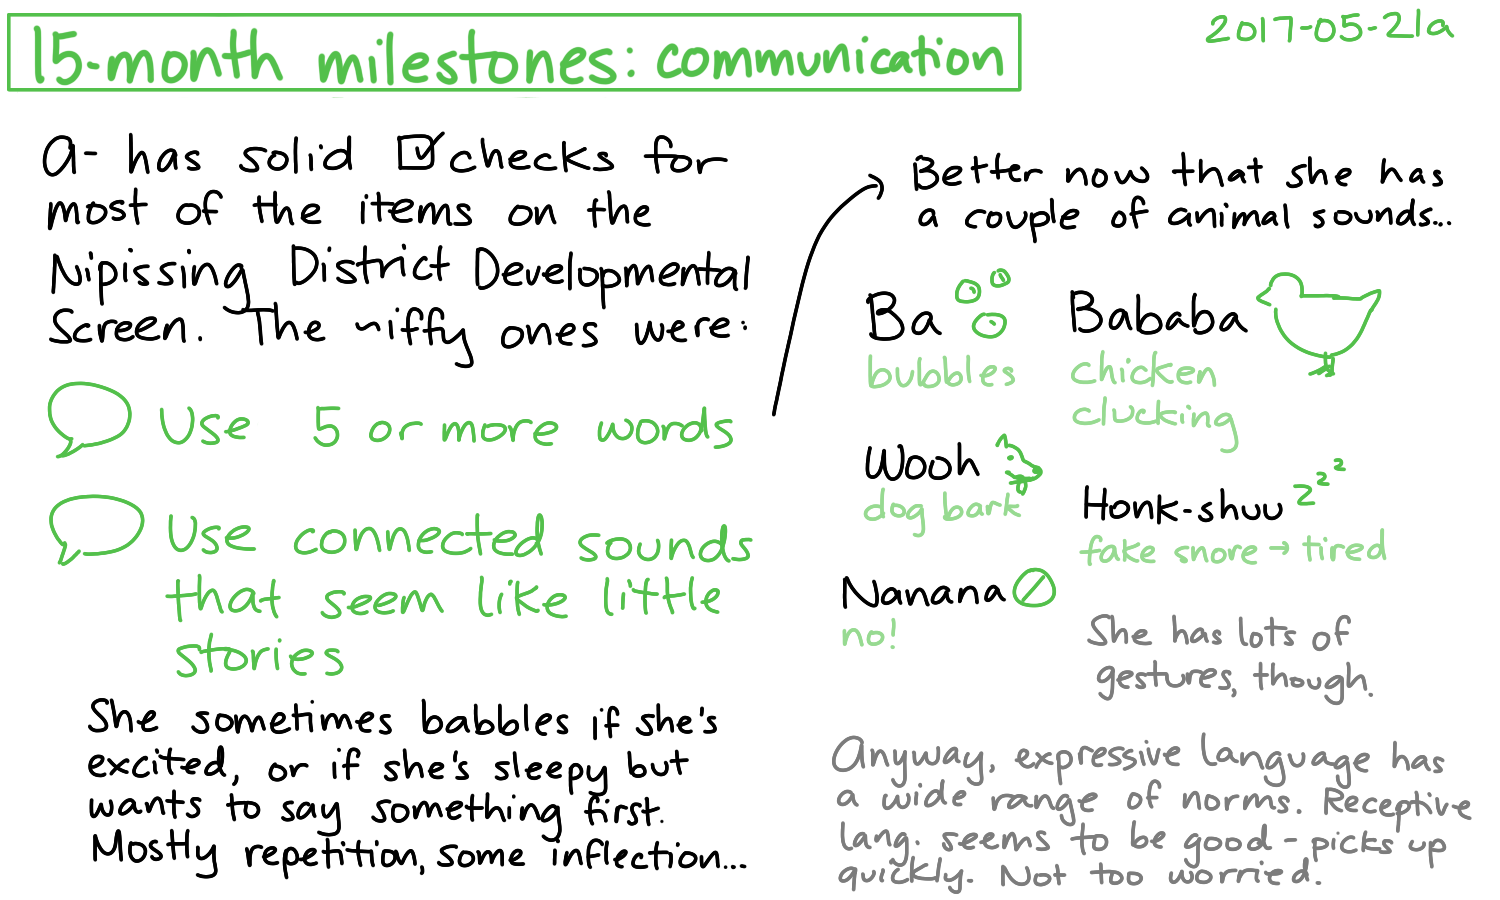 2017-05-21a 15-month milestones - communication #ndds #early-childhood #development #communication.png